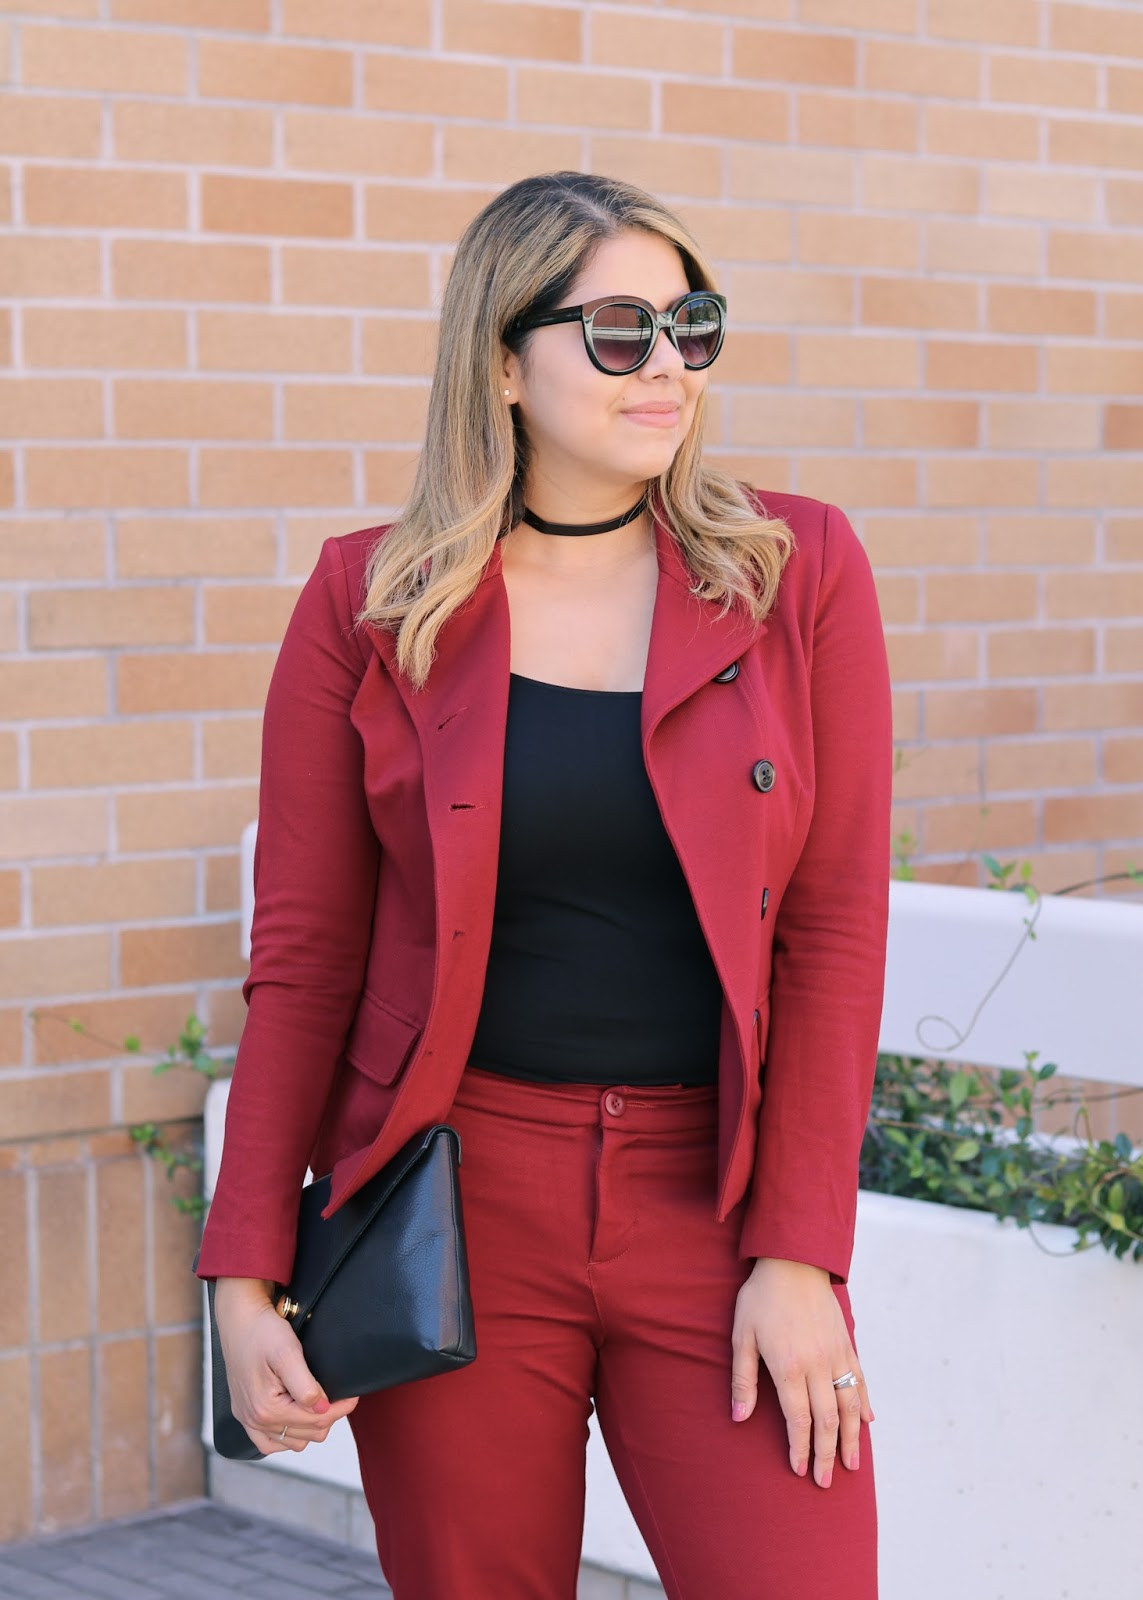 Fall 2016 outfit, black choker in a suit, burgundy suit, deep red suit for women, burgundy suit 2016